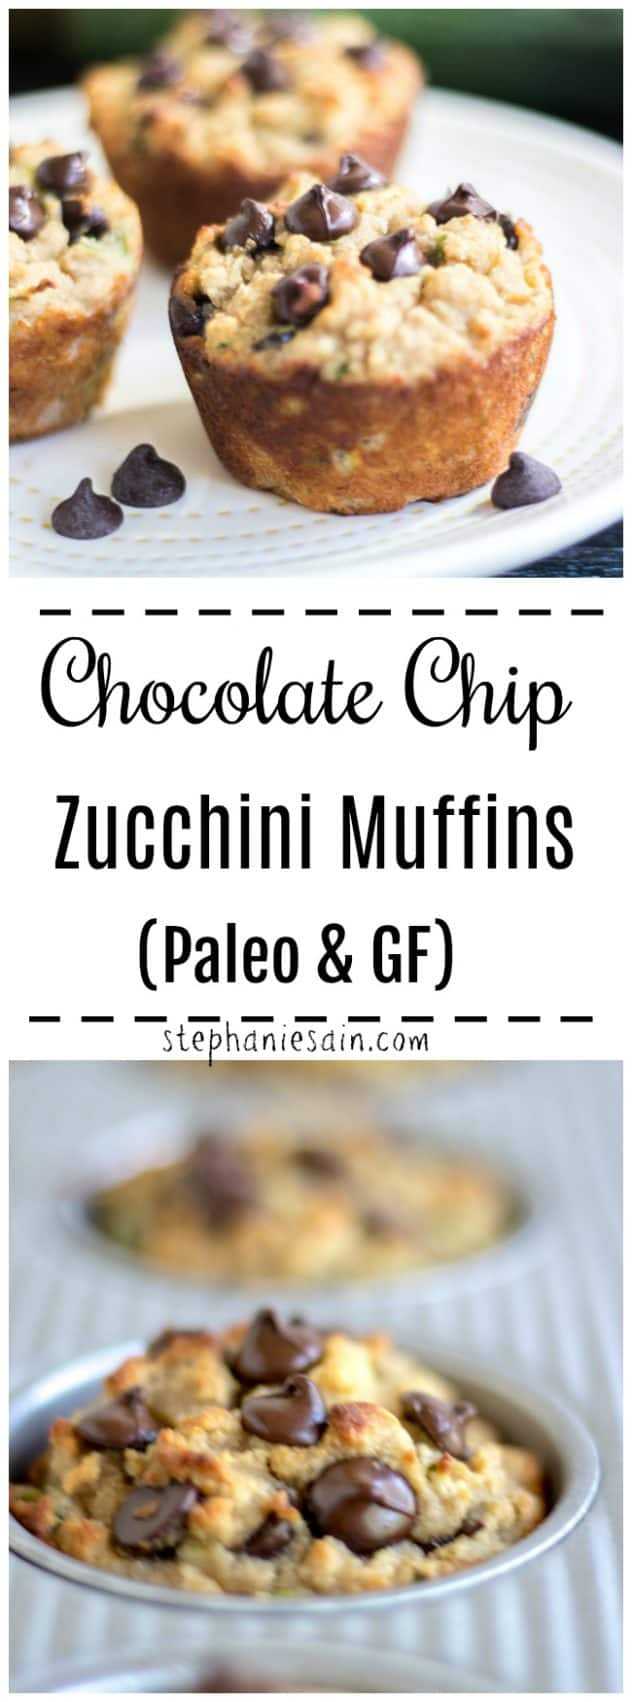 These Chocolate Chip Zucchini Muffins are the perfect healthy way to start your day. Loaded with chocolate & fresh zucchini so a great way to sneak in some veggies. Also good for mid-day snacking or to pack in lunches. Paleo, Gluten Free & No added Refined Sugar.